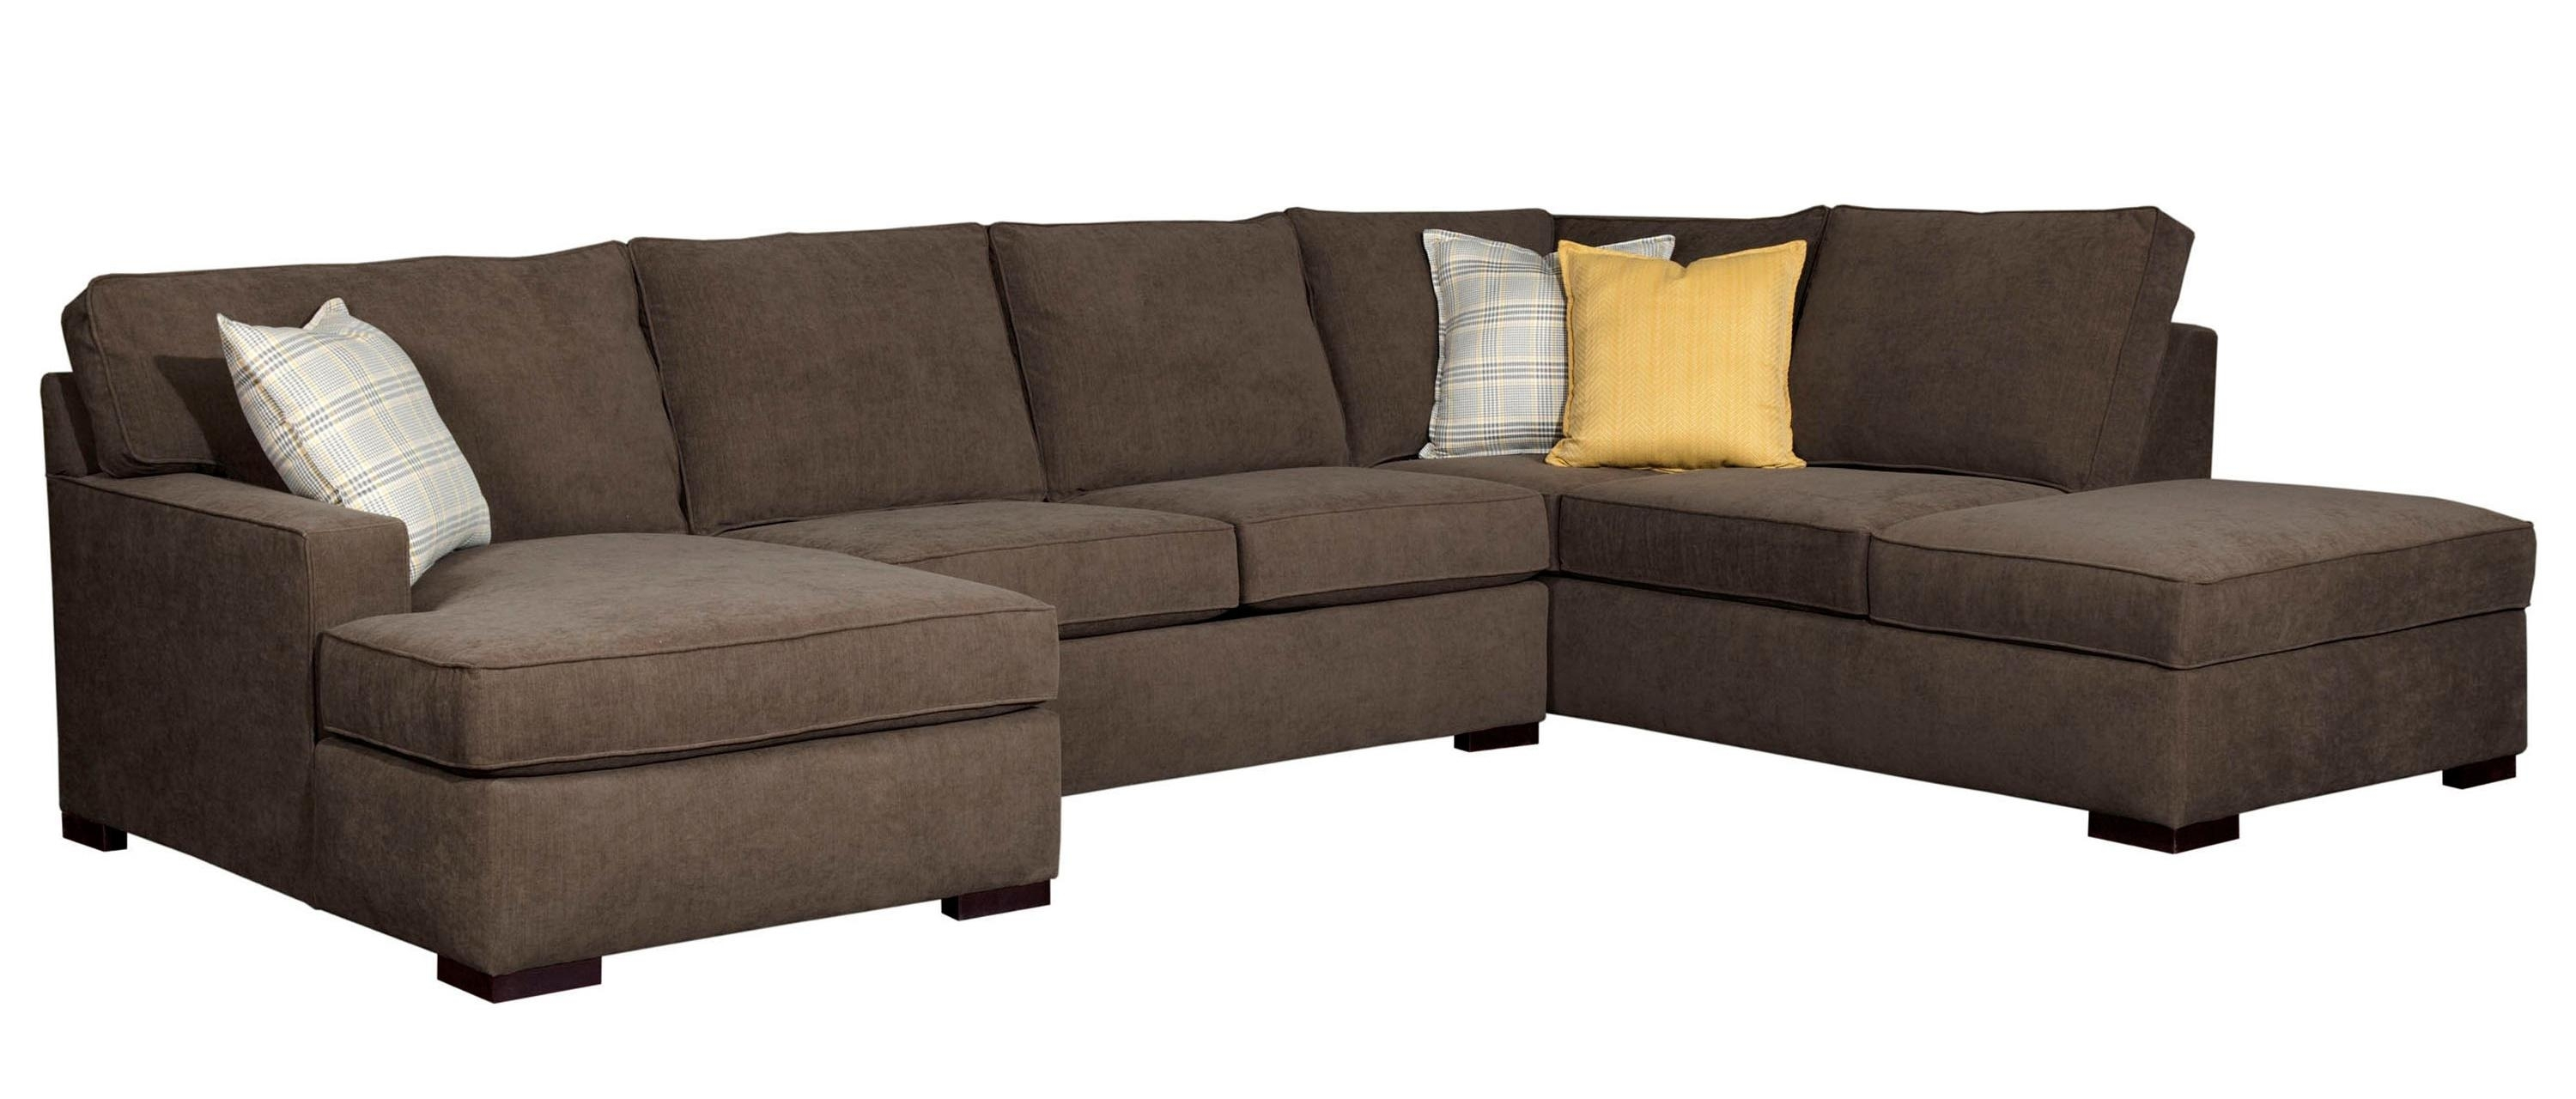 Broyhill Furniture Raphael Contemporary Sectional Sofa With Laf Regarding Sam Levitz Sectional Sofas (View 3 of 10)